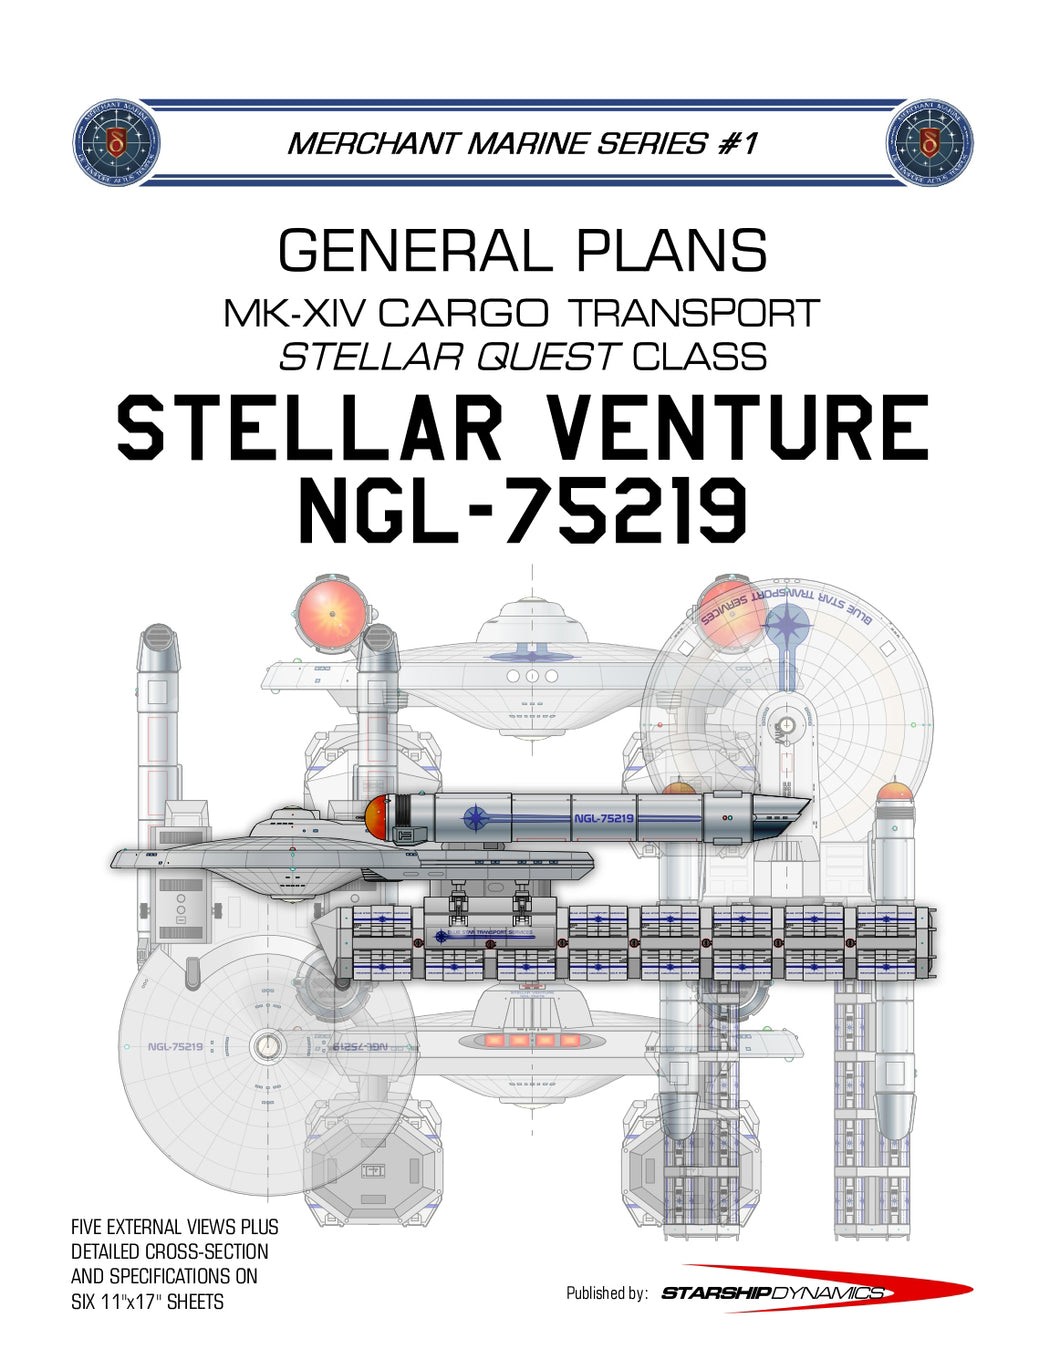 MK-XIV Cargo Transport, Stellar Venture NGL-75219, Stellar Quest class: General Plans